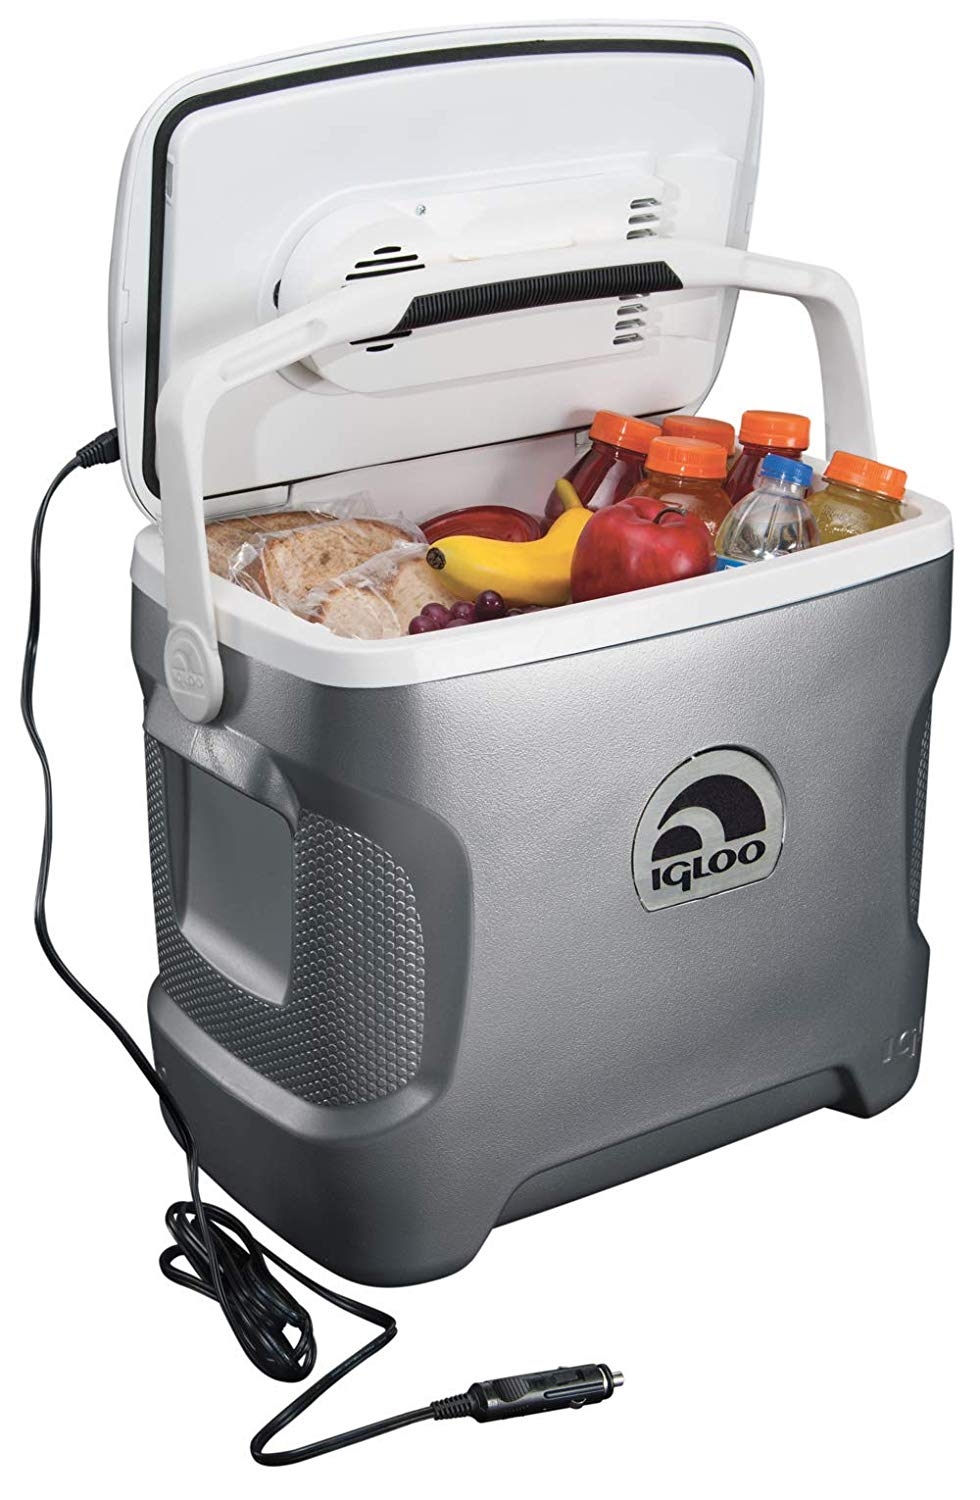 The Igloo Iceless Cooler - Fill up your refillable water canteens and keep any refreshments cold in the mini cooler of your dreams. The Igloo Iceless Cooler adapts into your car's cigarette lighter and keeps items as cold as 36 F. Also, its' lightweight body is designed to fit between your center console and the dashboard for easy access.